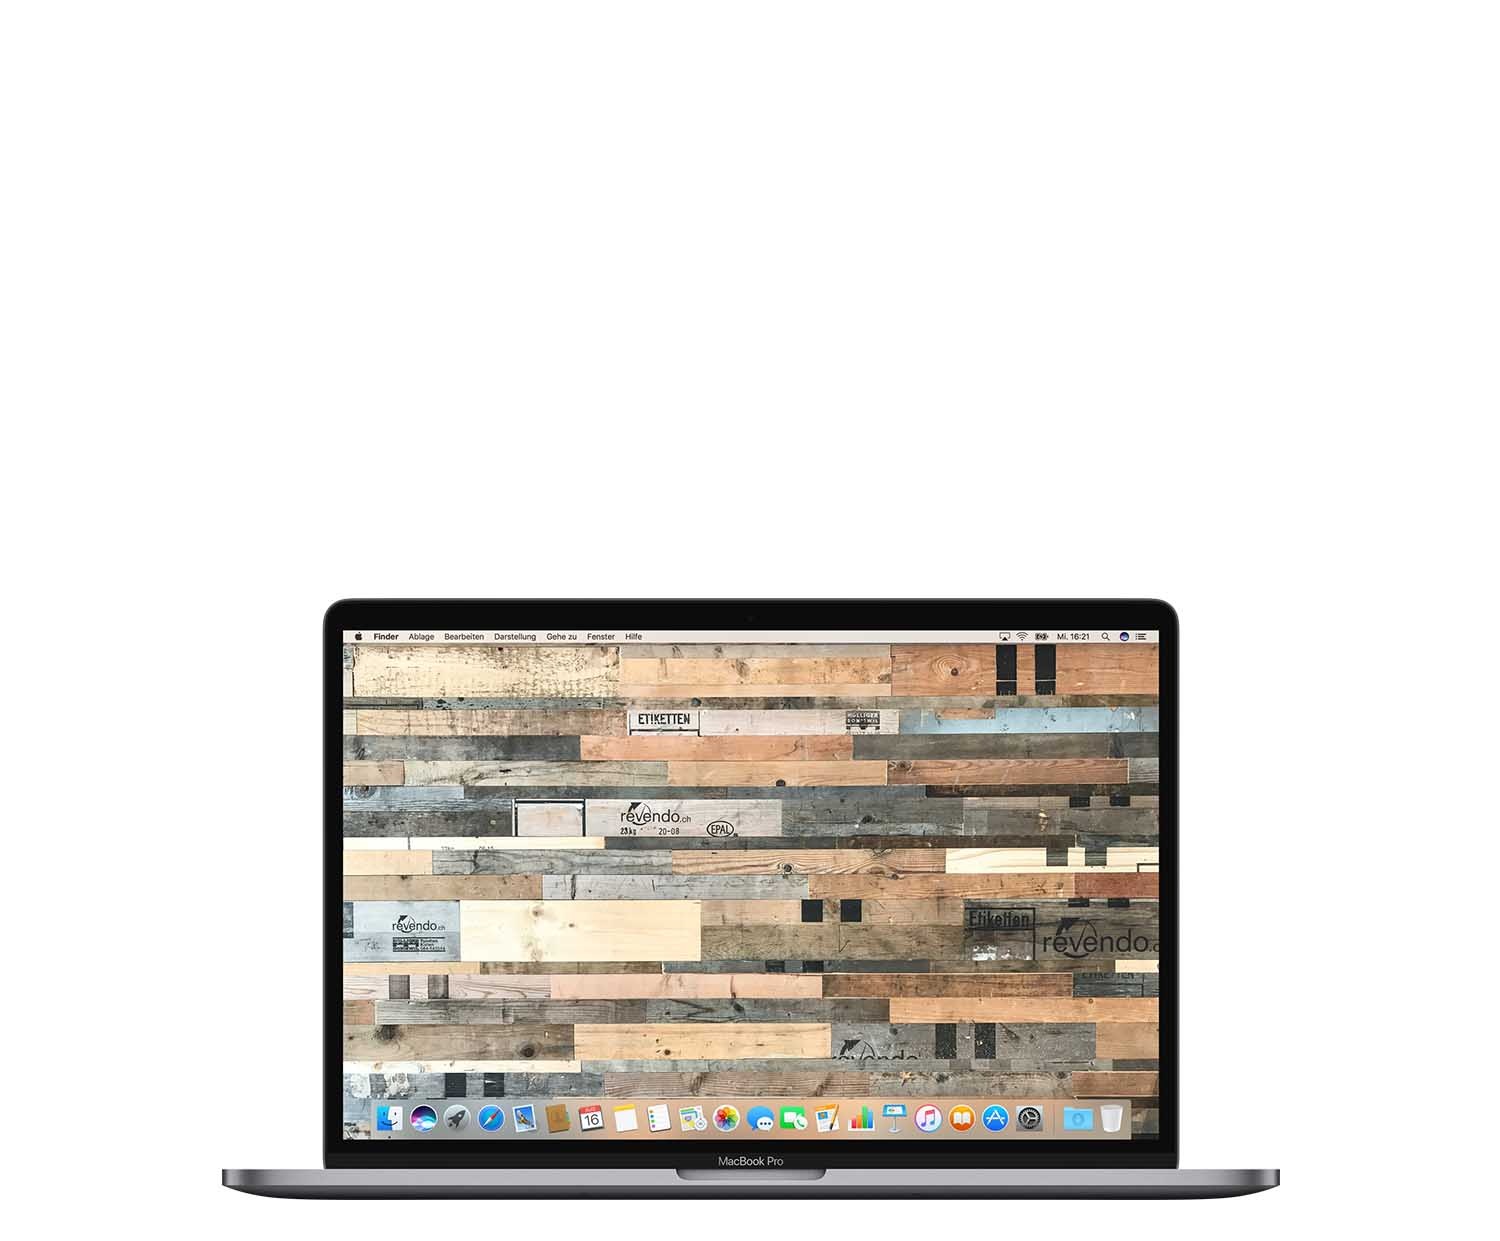 macbook pro 13 ohne touch bar 2 0 ghz core i5 256 gb. Black Bedroom Furniture Sets. Home Design Ideas